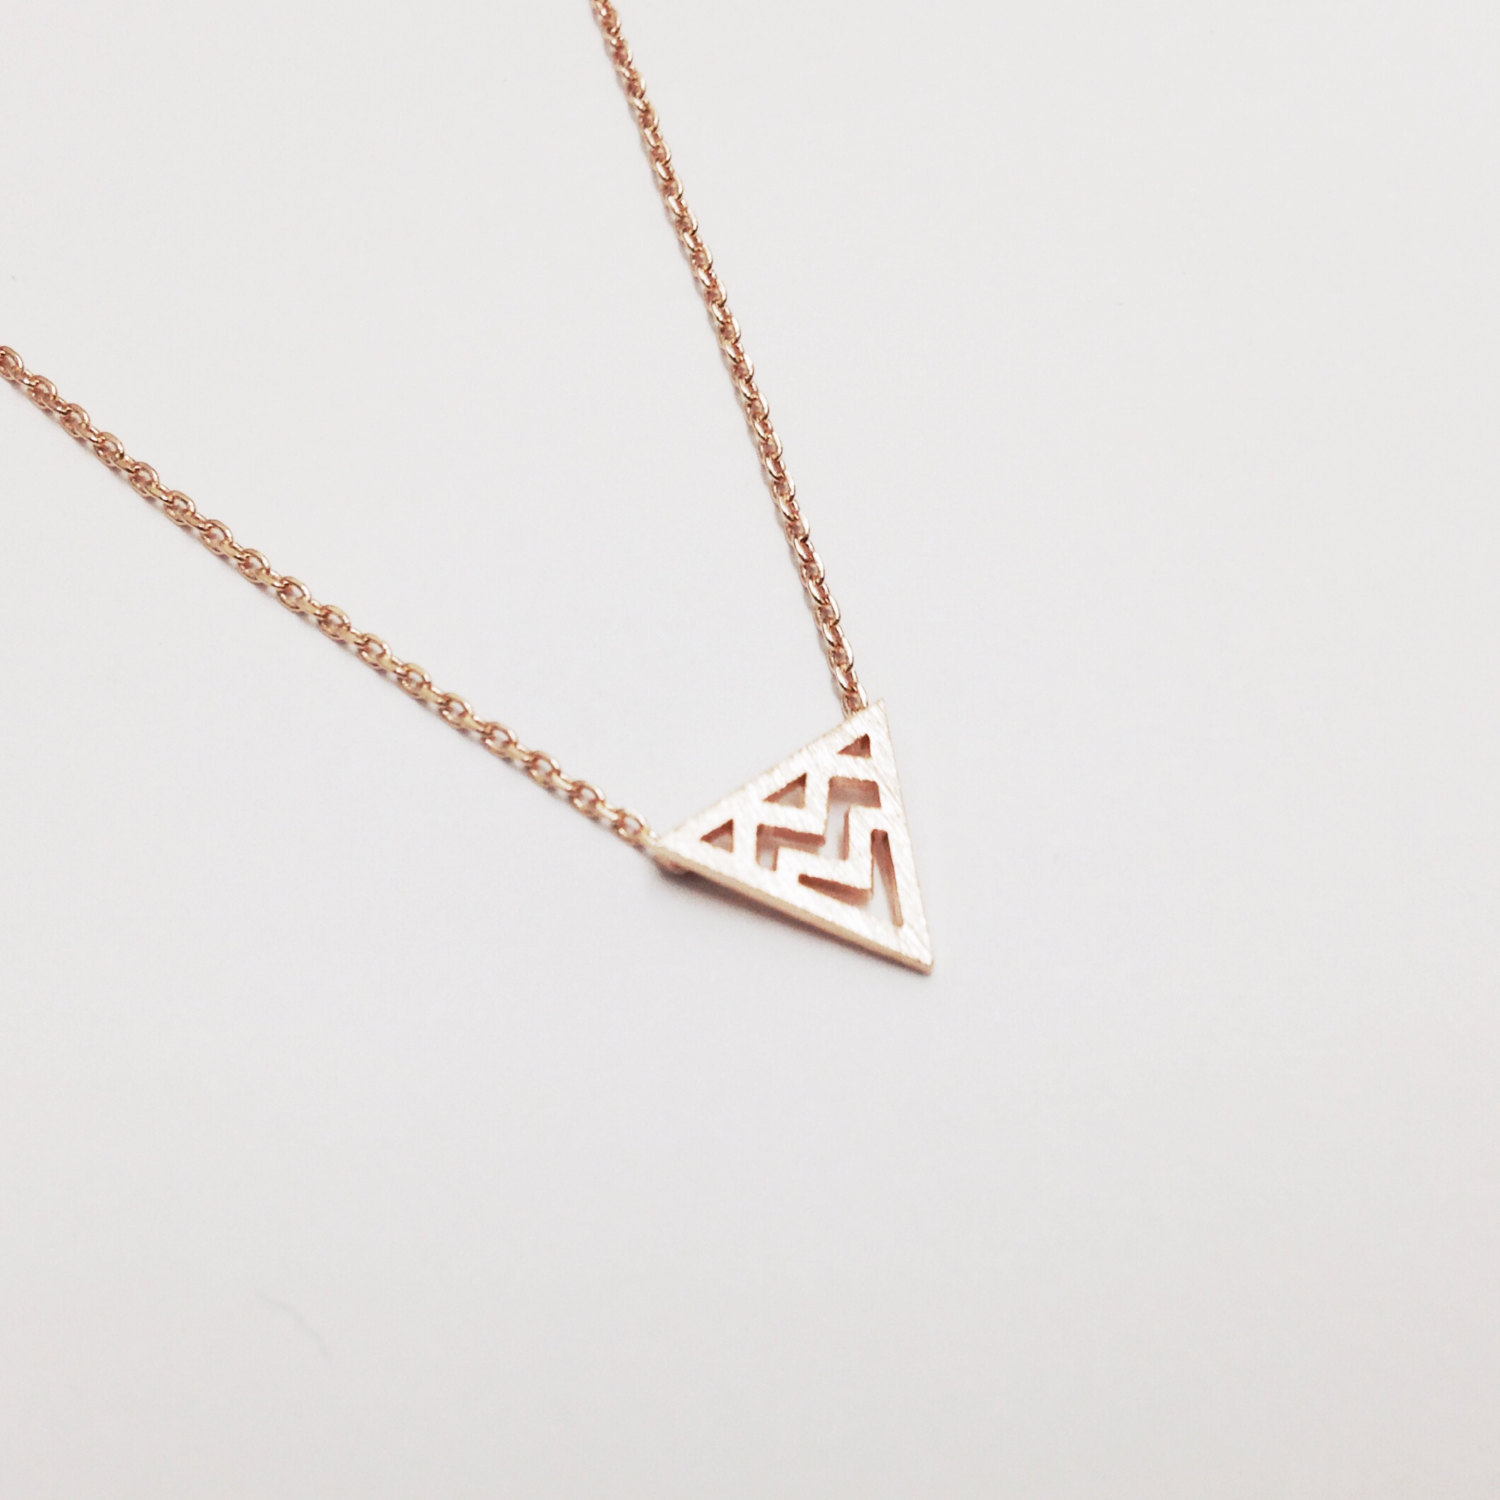 Geometric Necklace - Rose Gold Necklace, Rose Gold Triangle , Delicate Necklace, Minimalist Necklace, Dainty Necklace, Tribal Necklace